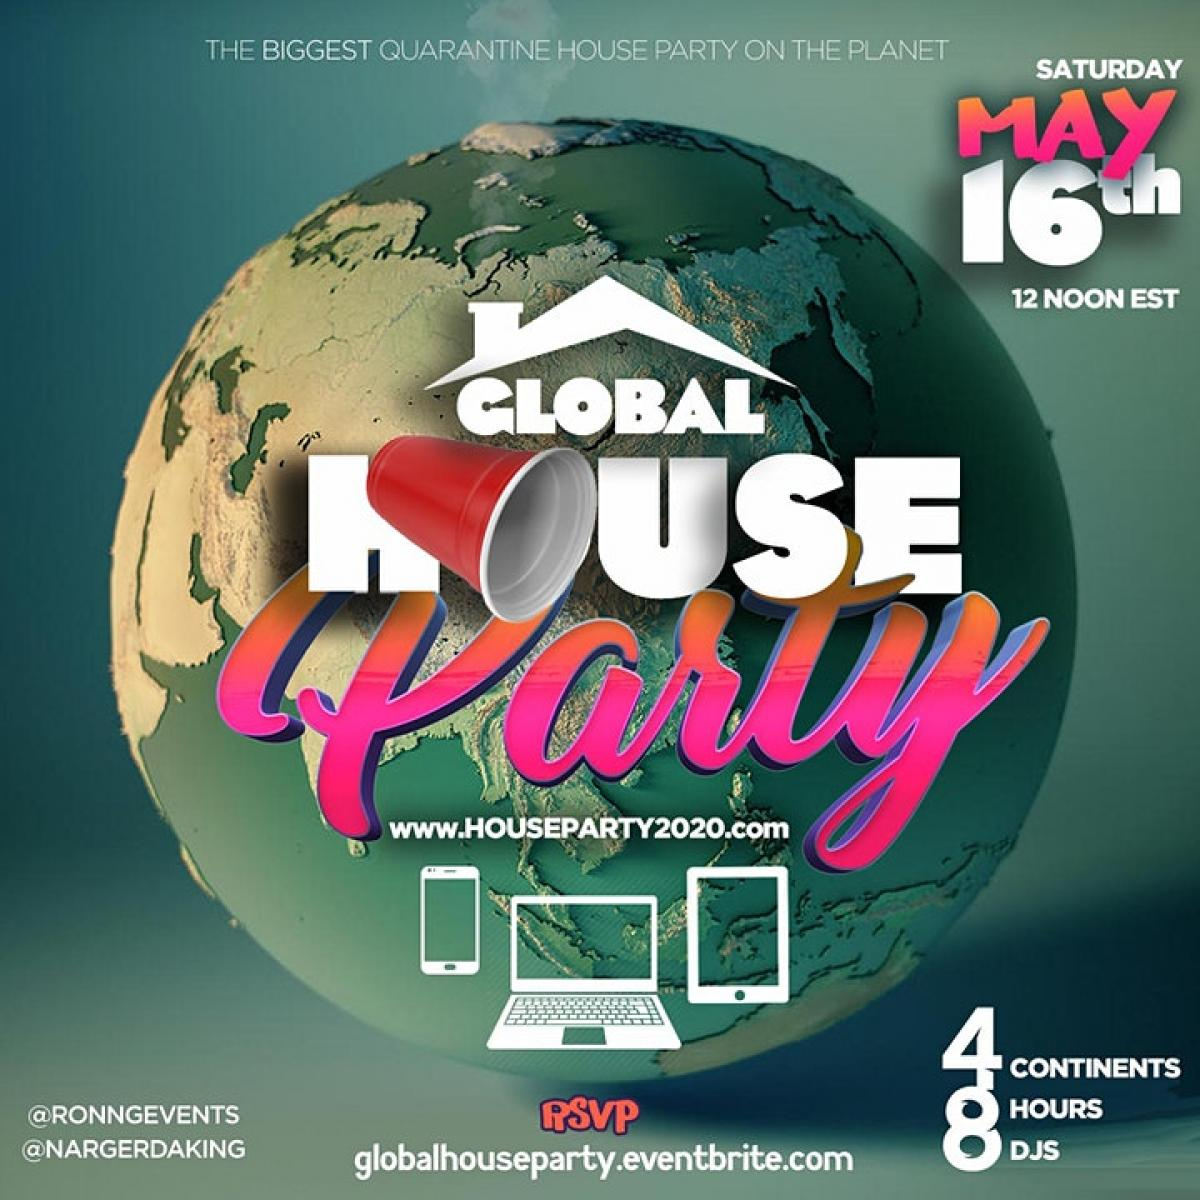 Global House Party flyer or graphic.